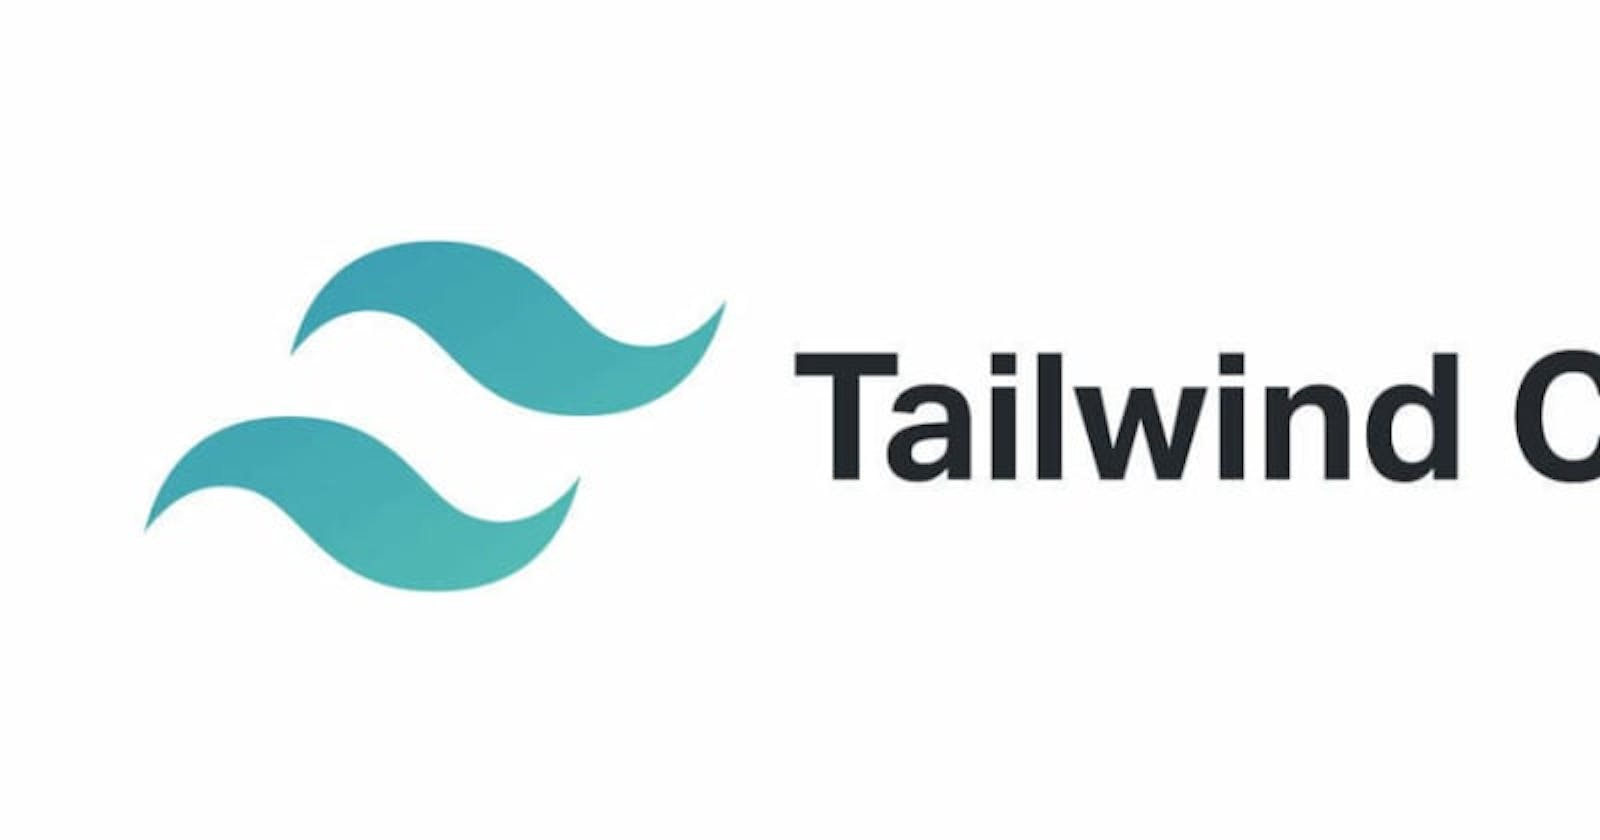 Start with your first Tailwind CSS Project